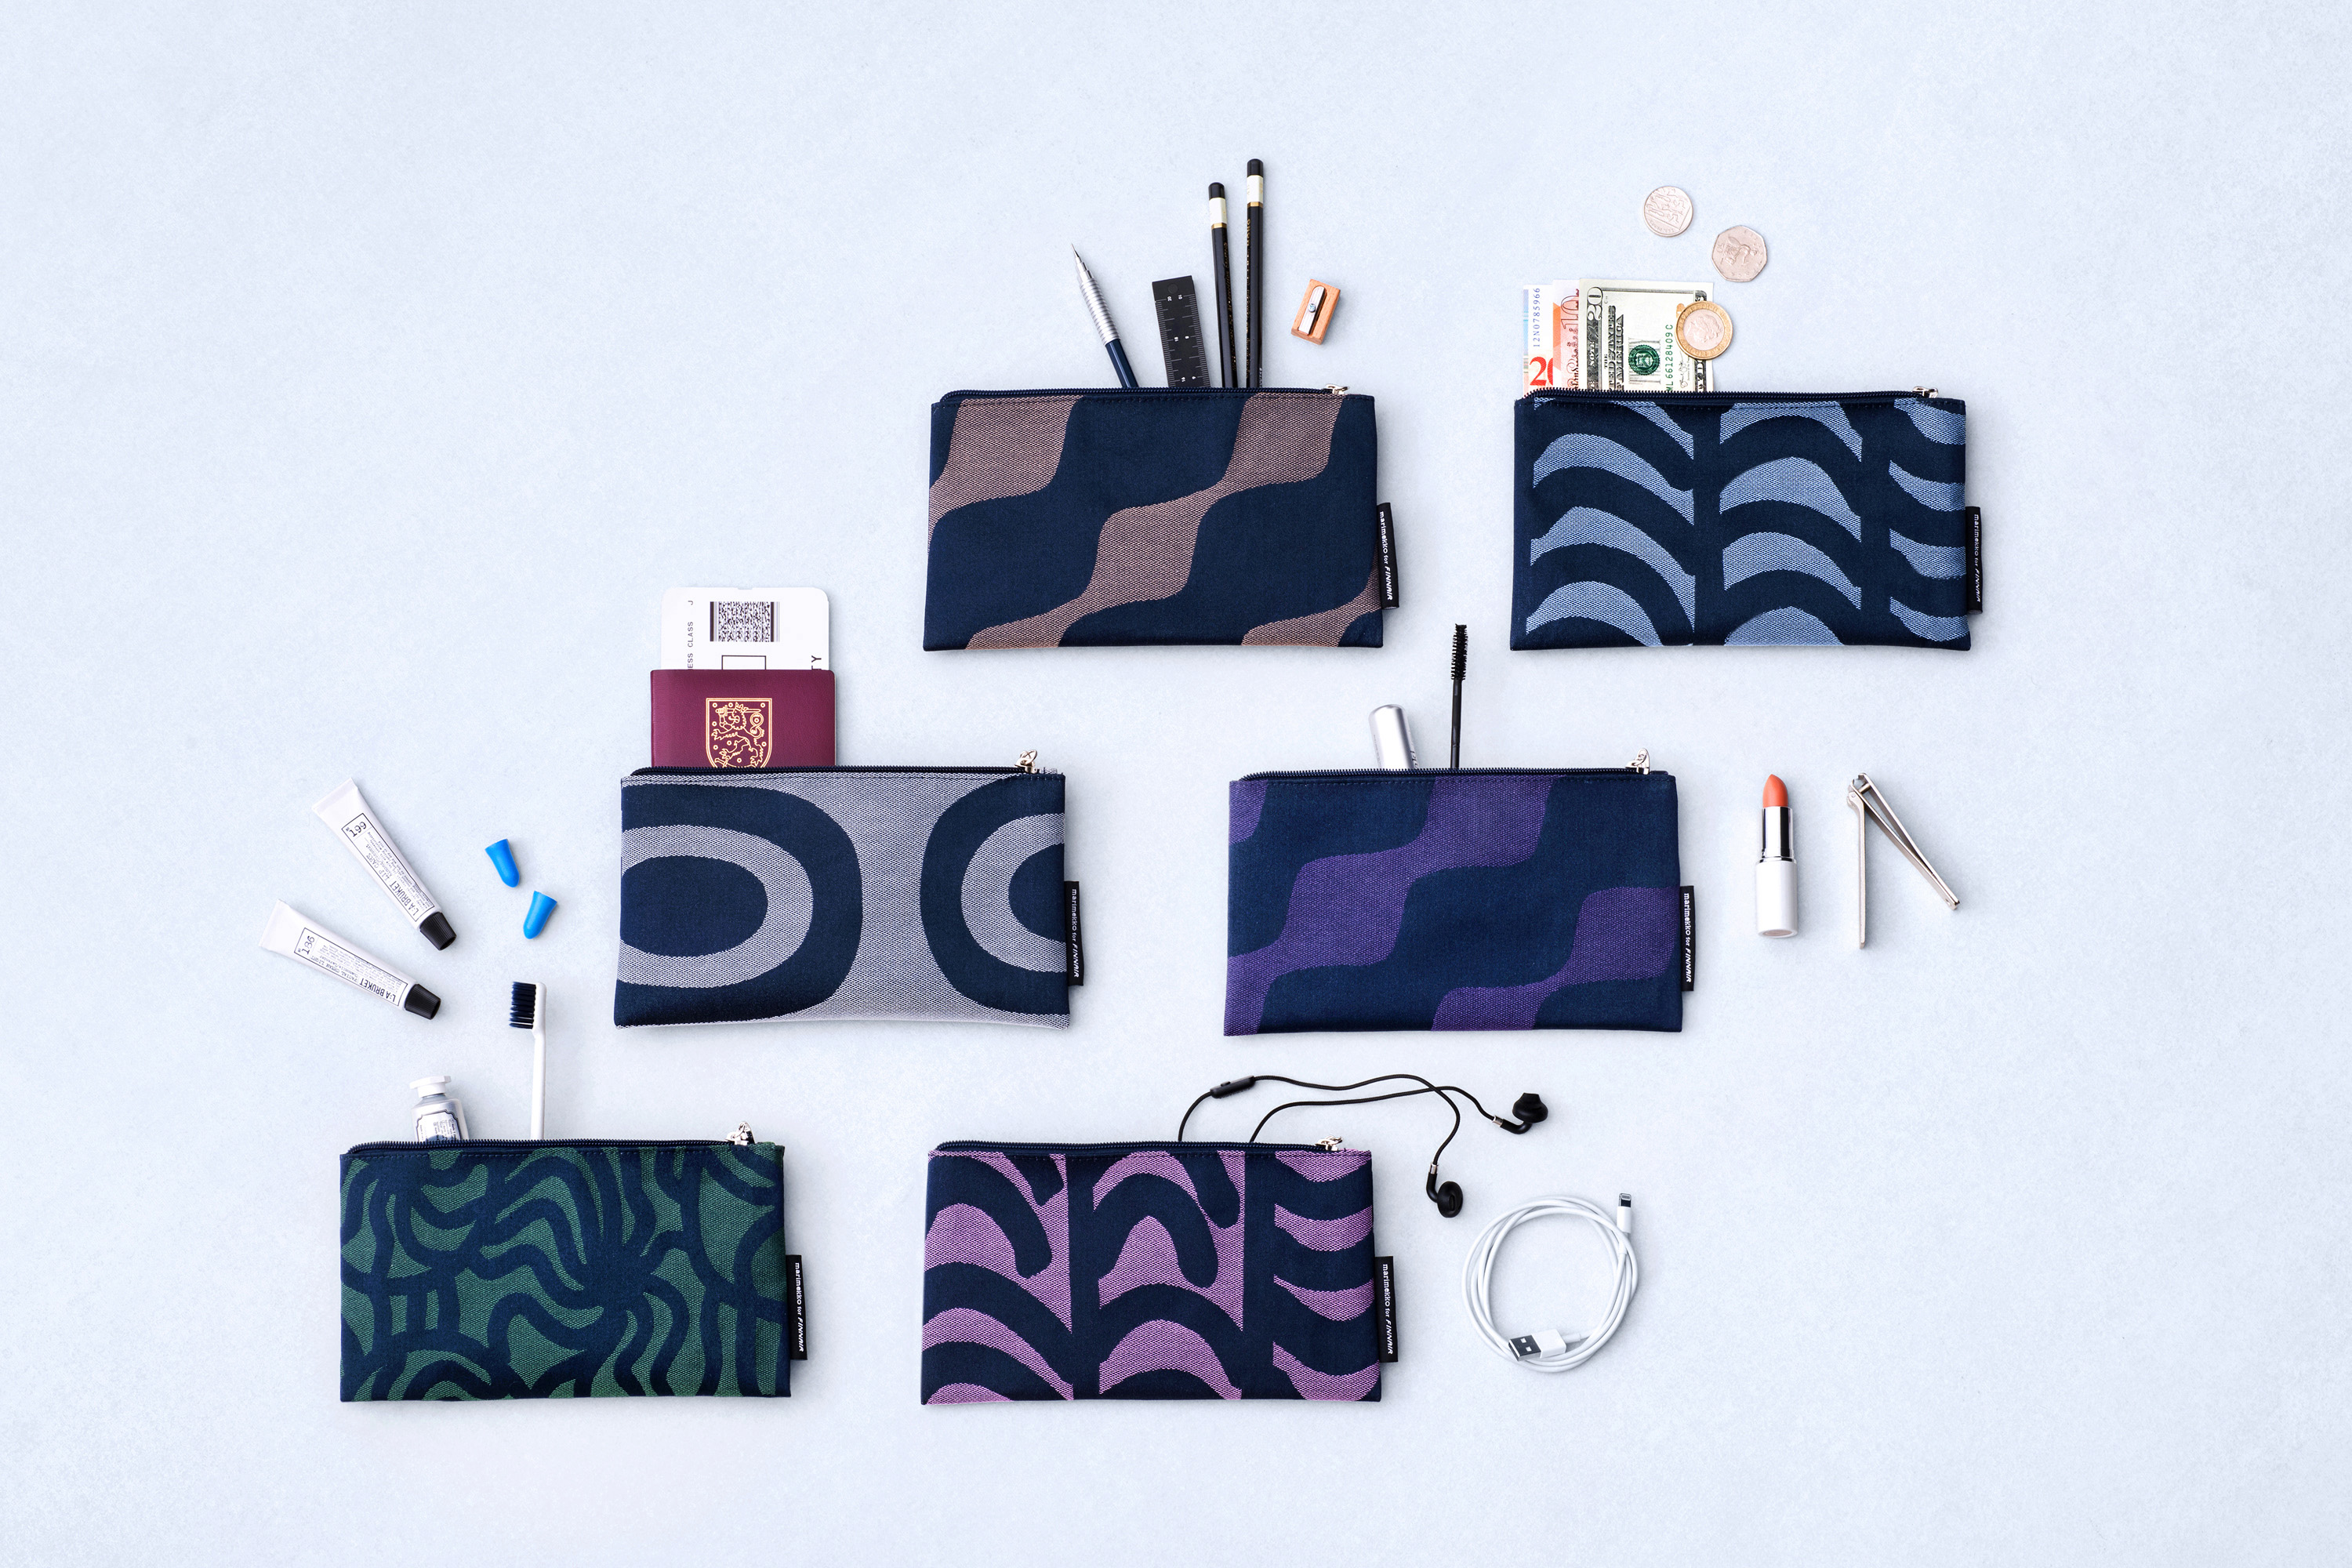 Finnair partners with Marimekko and L:A Bruket – promoting sustainable design, skincare, and refreshed Business Class amenities - Alvinology